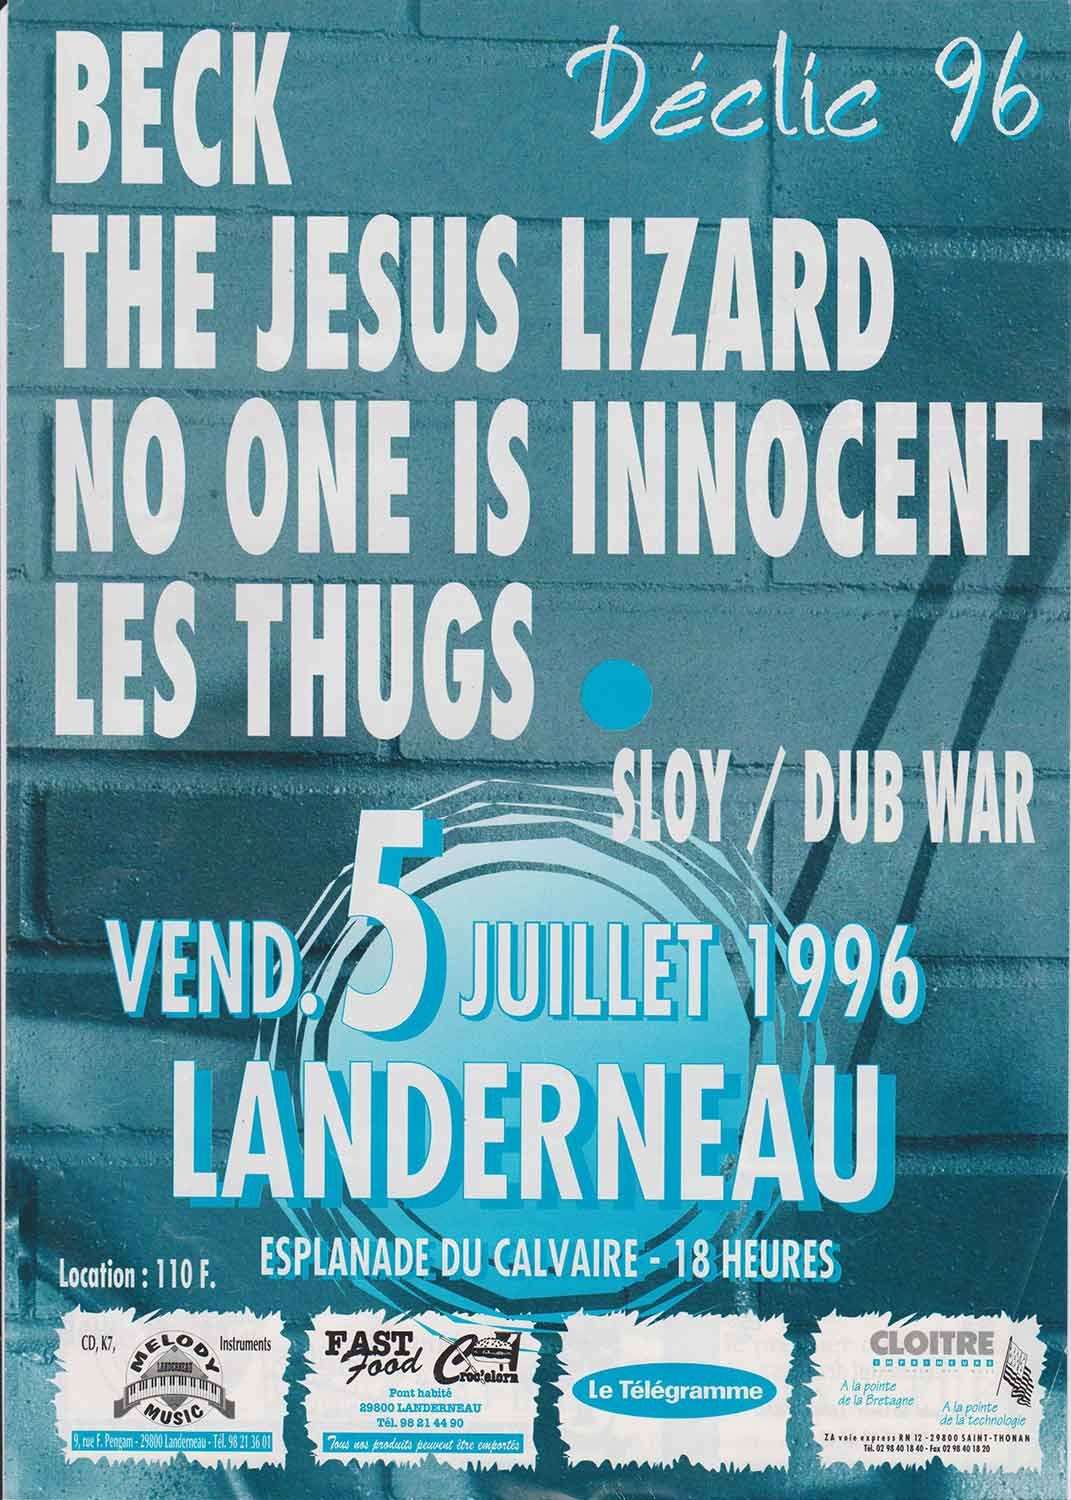 "5 juillet 1996 Dub War, Sloy, Les Thugs, No One Is Innocent, The Jesus Lizard, Beck à Landerneau ""Esplanade Du Calvaire"""